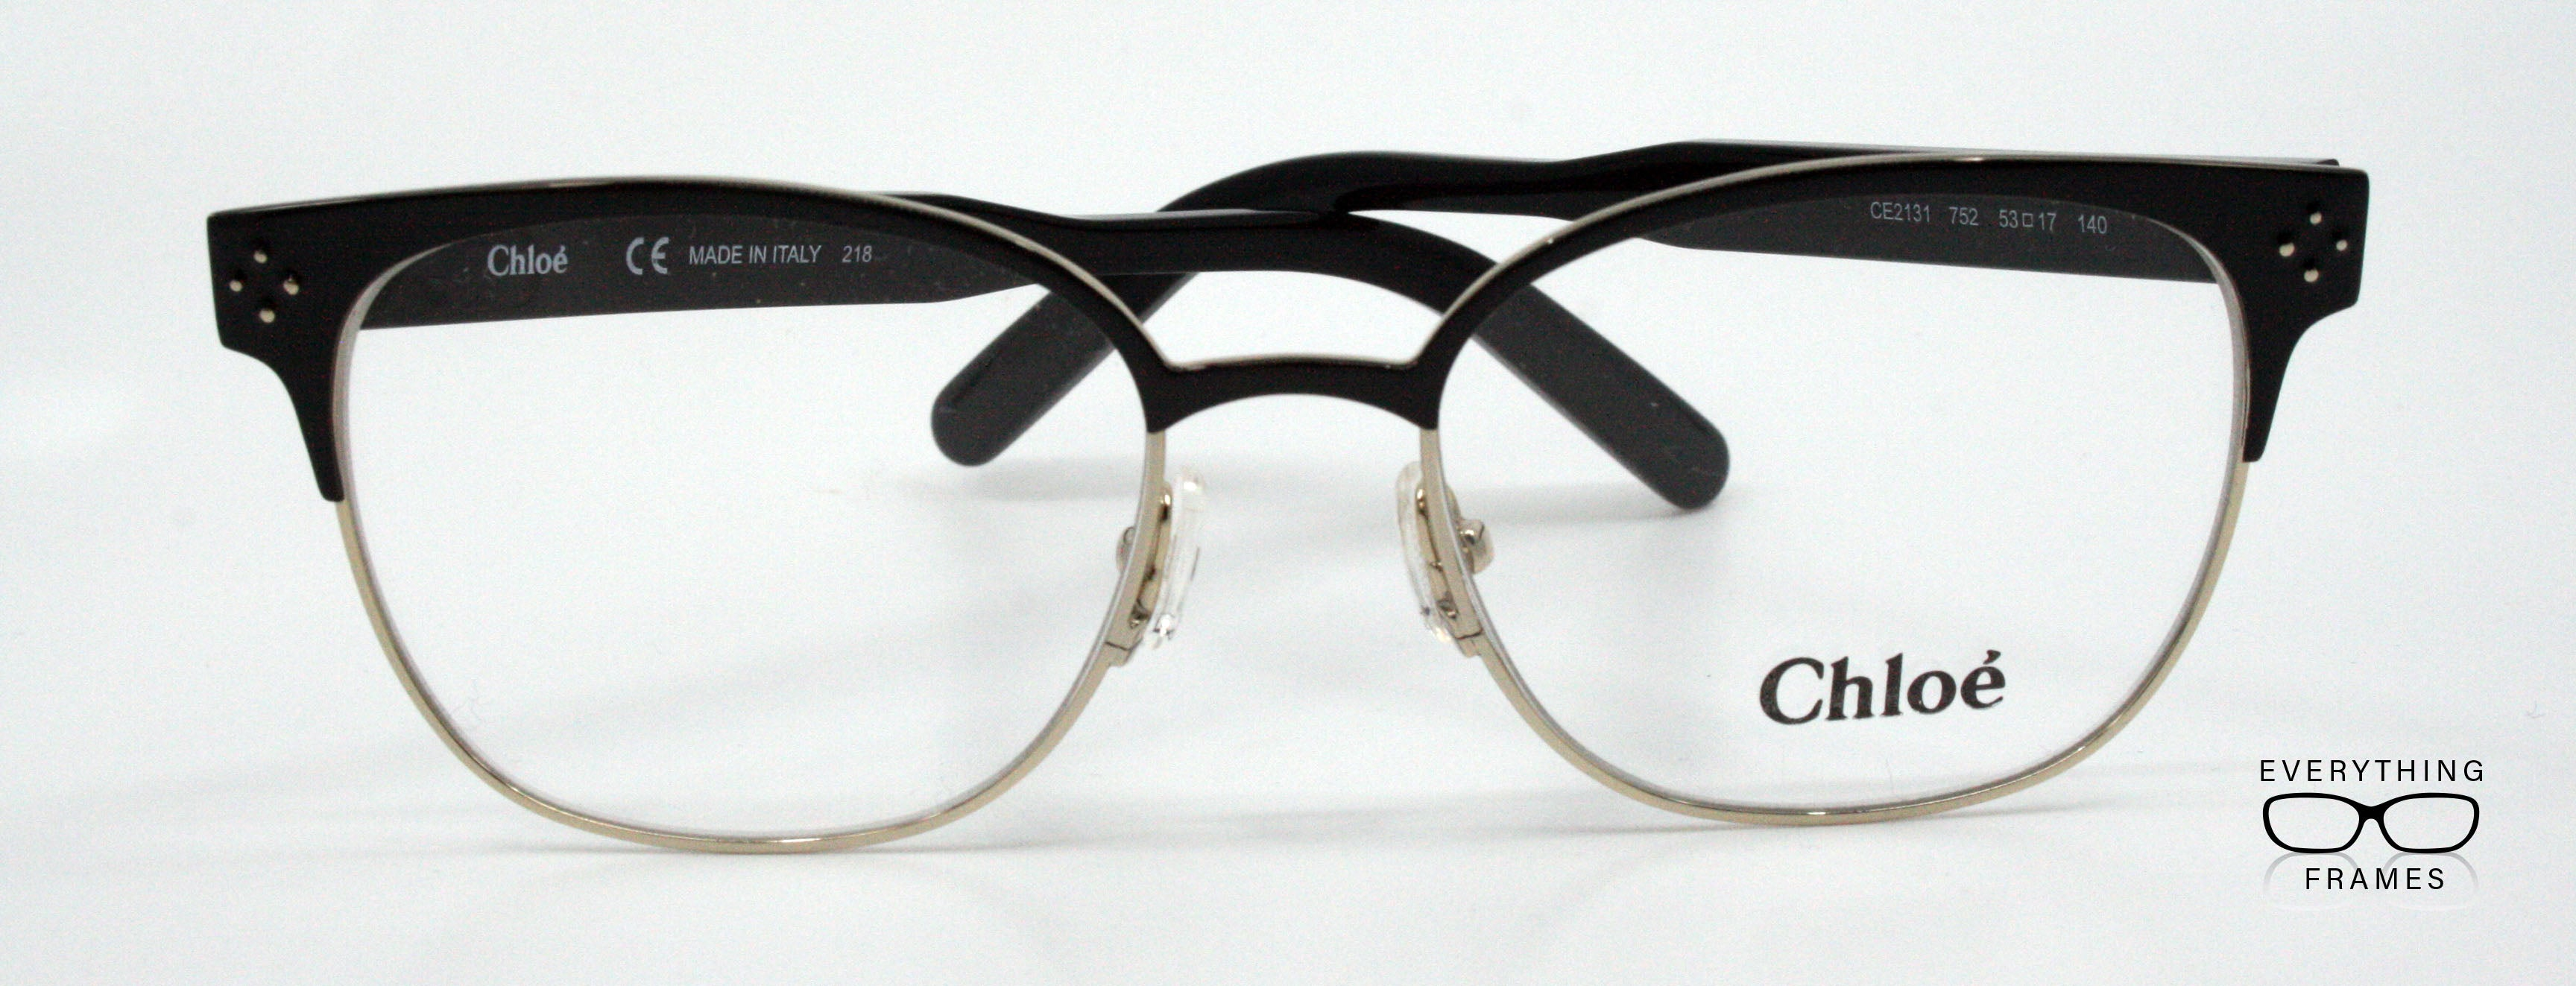 8a5fc55bb0 Chloe Gold   Black Oval Eyeglasses for Women CE2131 752 – Everything ...